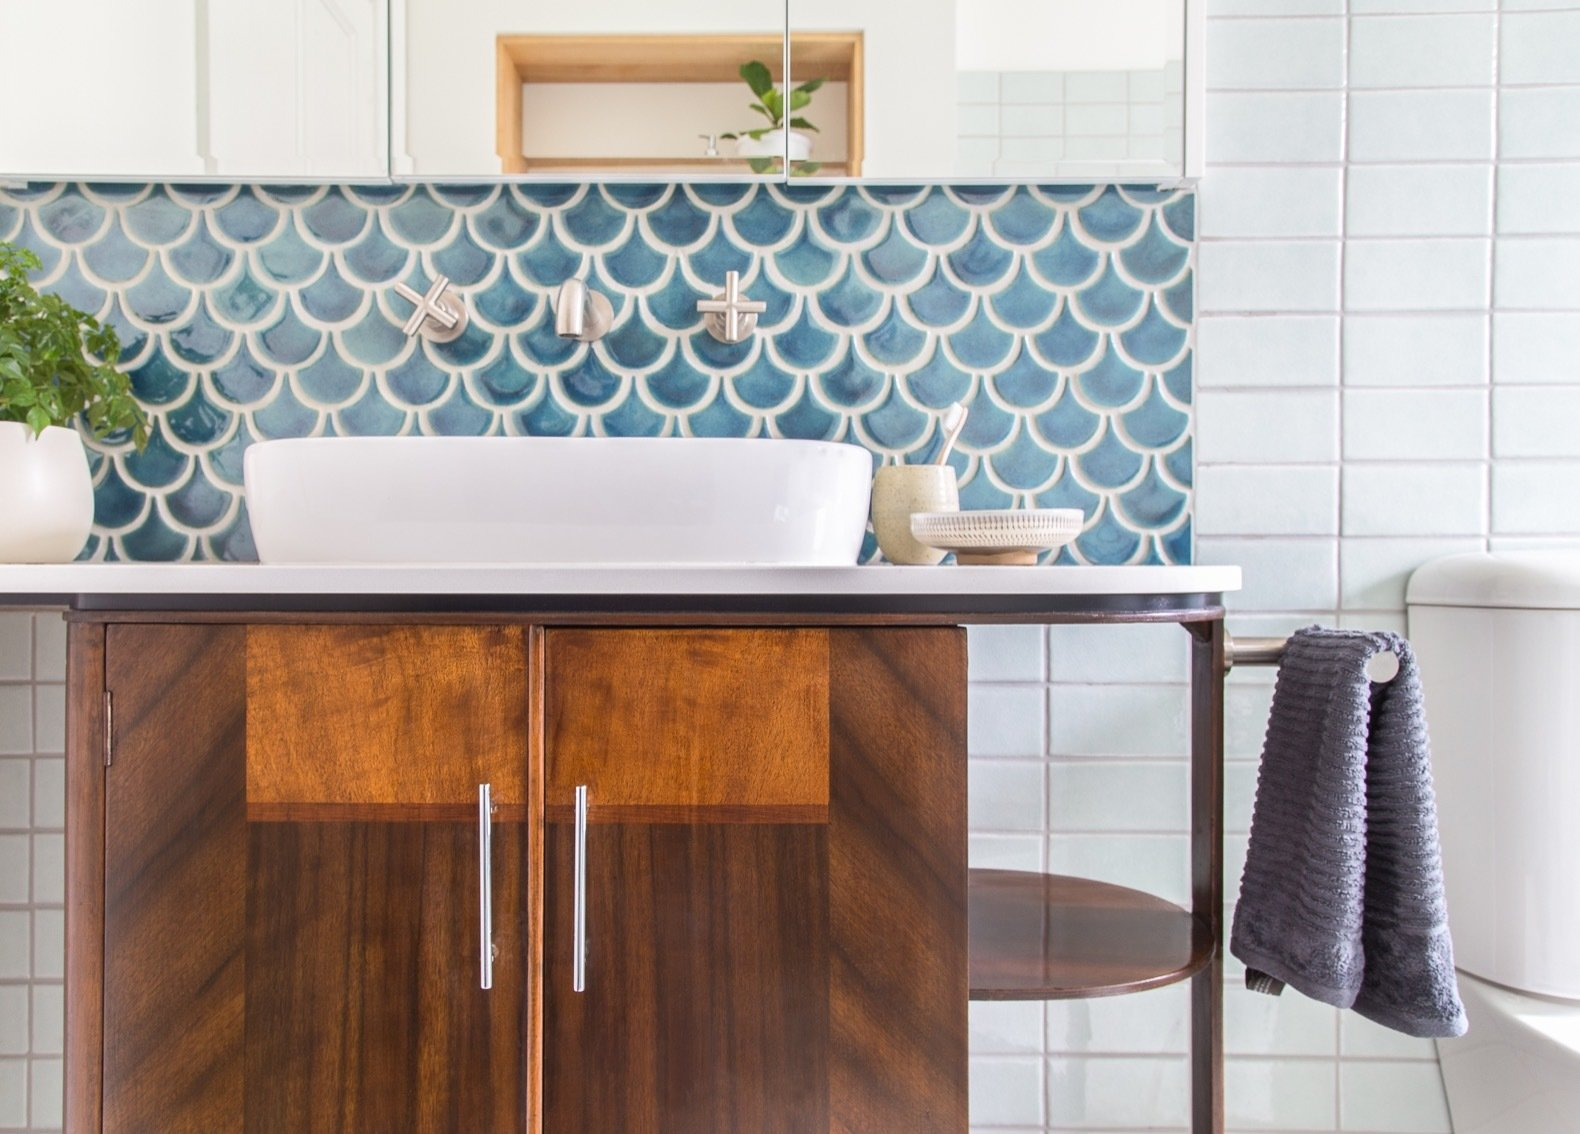 Bath Room, Stone Counter, Two Piece Toilet, Vessel Sink, and Ceramic Tile Wall An art deco drinks trolley was repurposed as a bathroom vanity. All fixtures are low-flow.   Photo 10 of 15 in A Cramped Bungalow Is Reborn as an Eco-Minded Abode For Two Gardeners